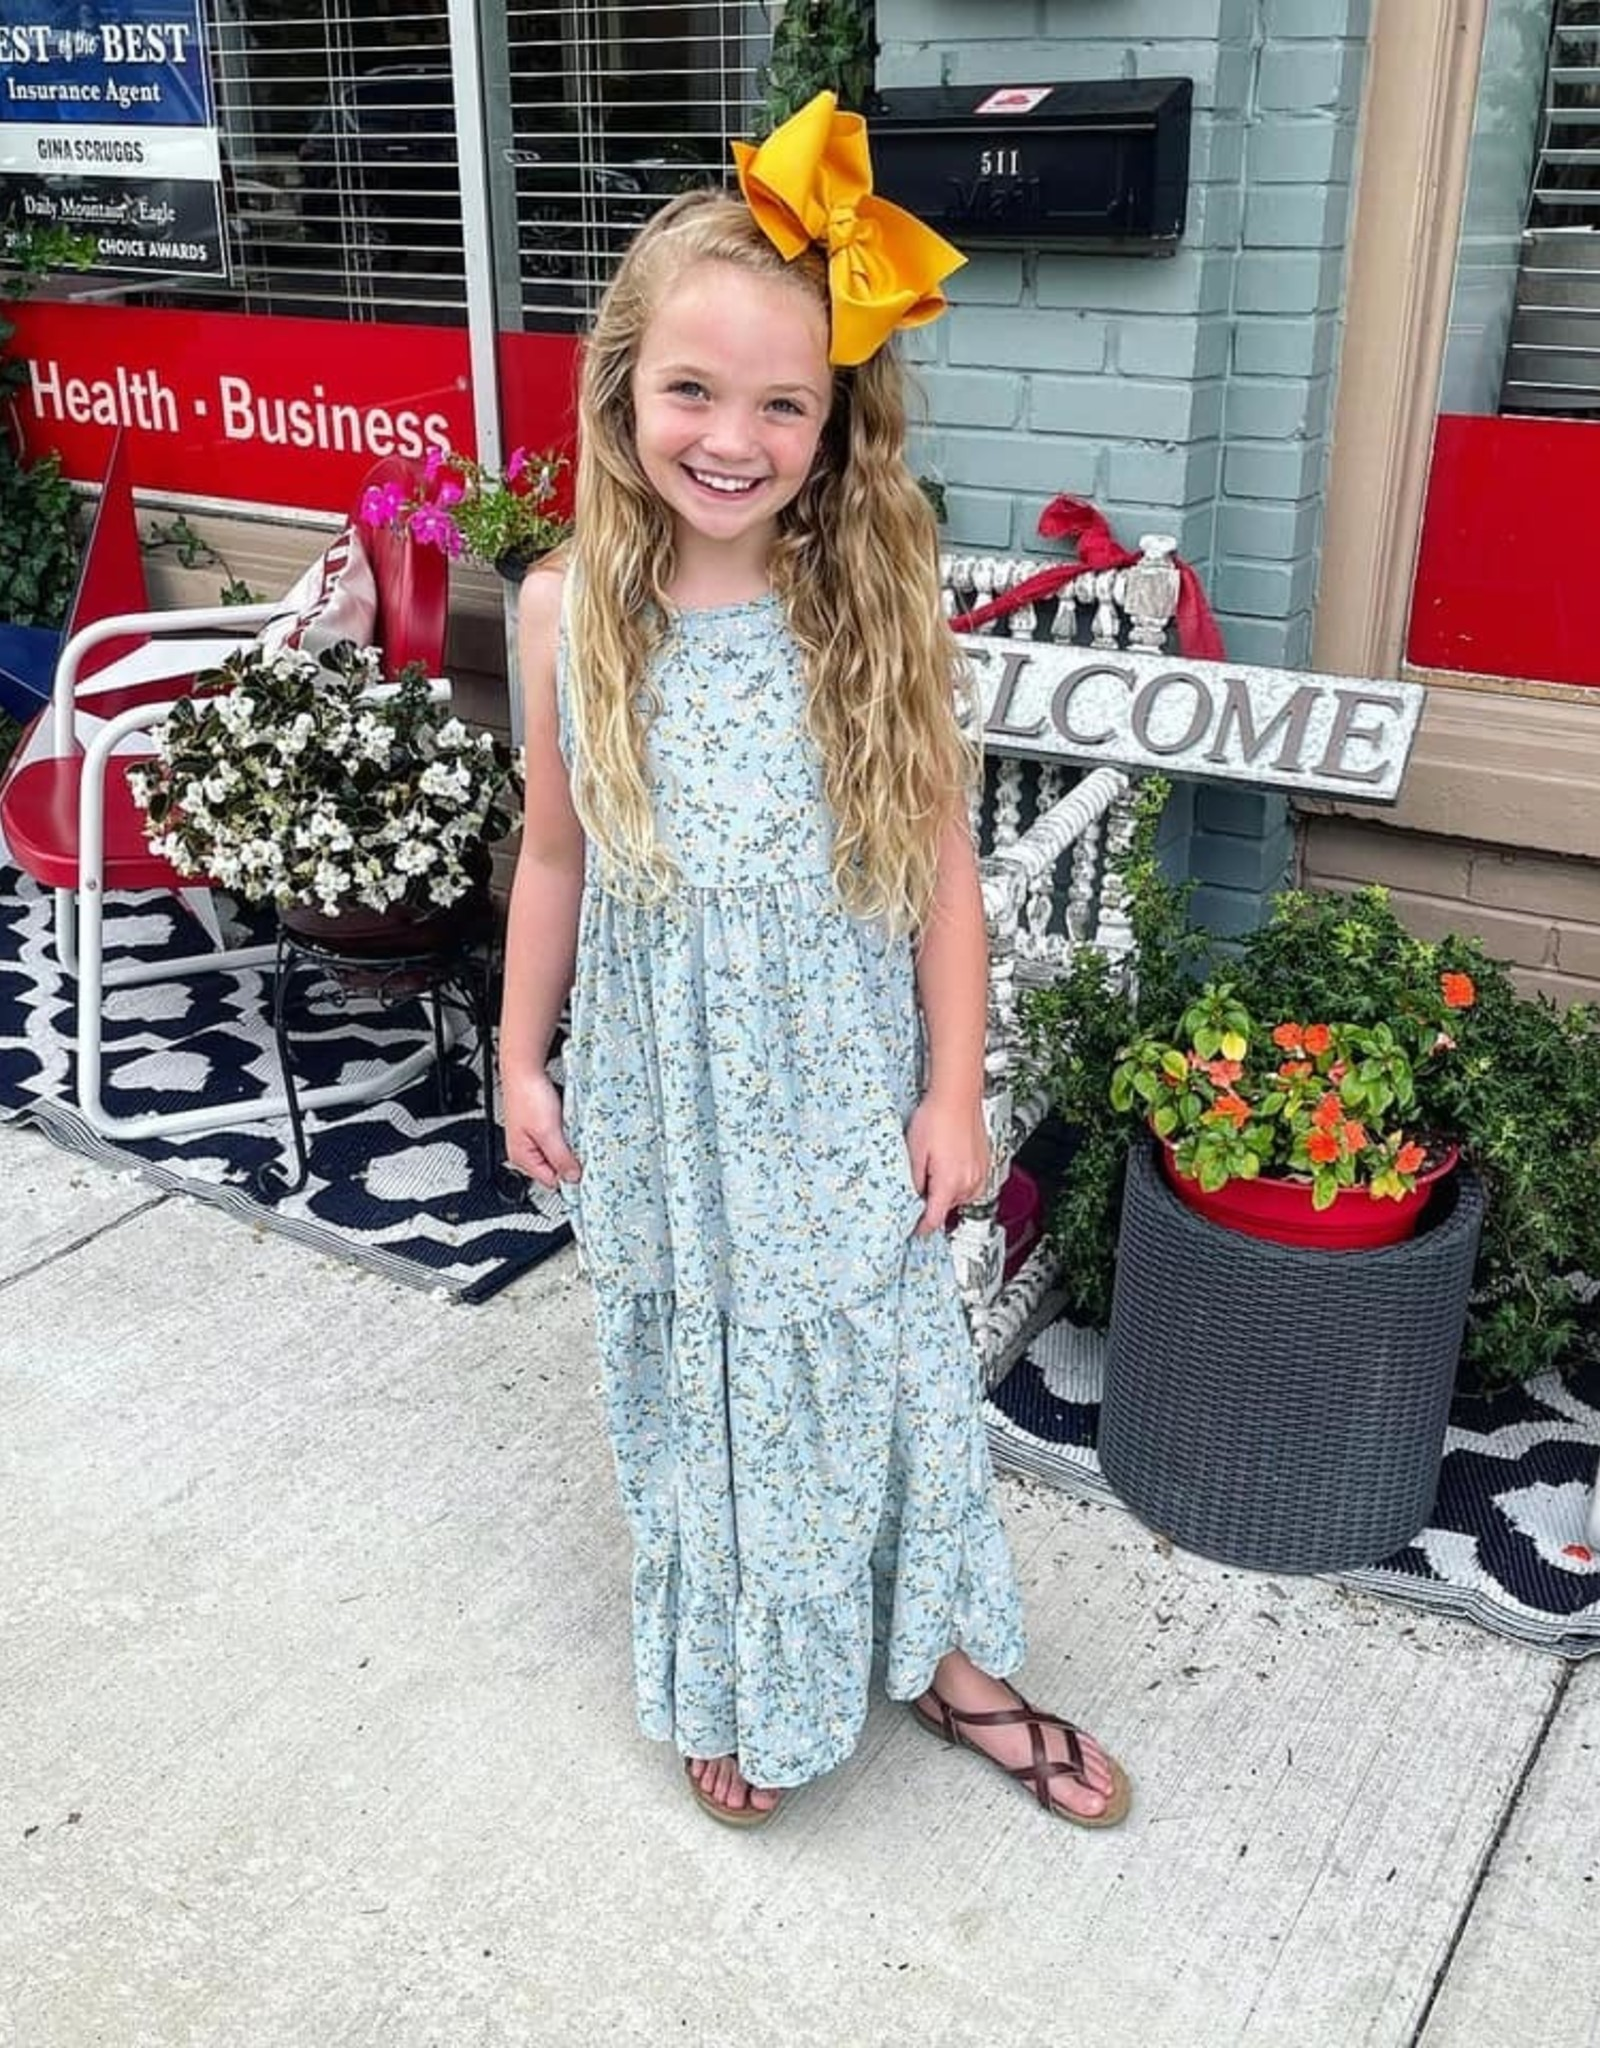 Kate Maxi Dress in Blue Floral